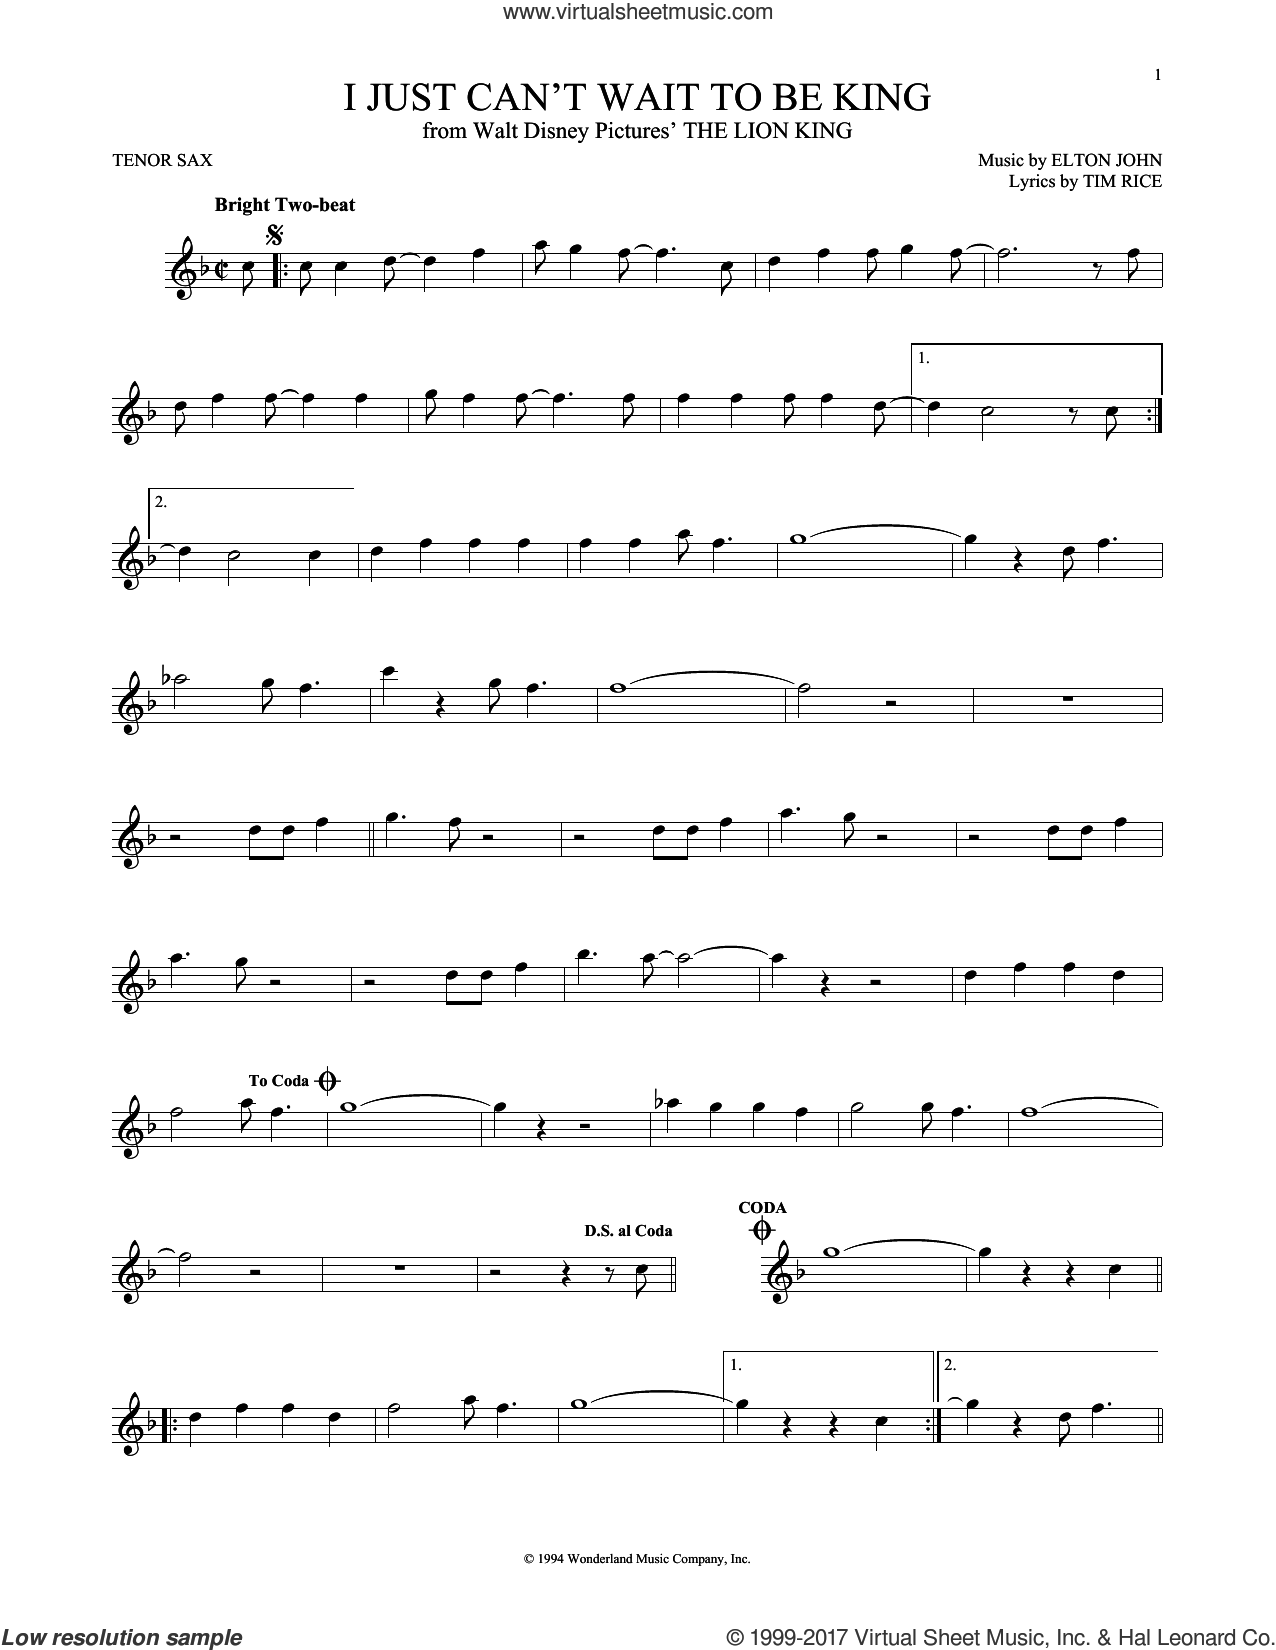 I Just Can't Wait To Be King (from The Lion King) sheet music for tenor saxophone solo by Elton John and Tim Rice, intermediate skill level